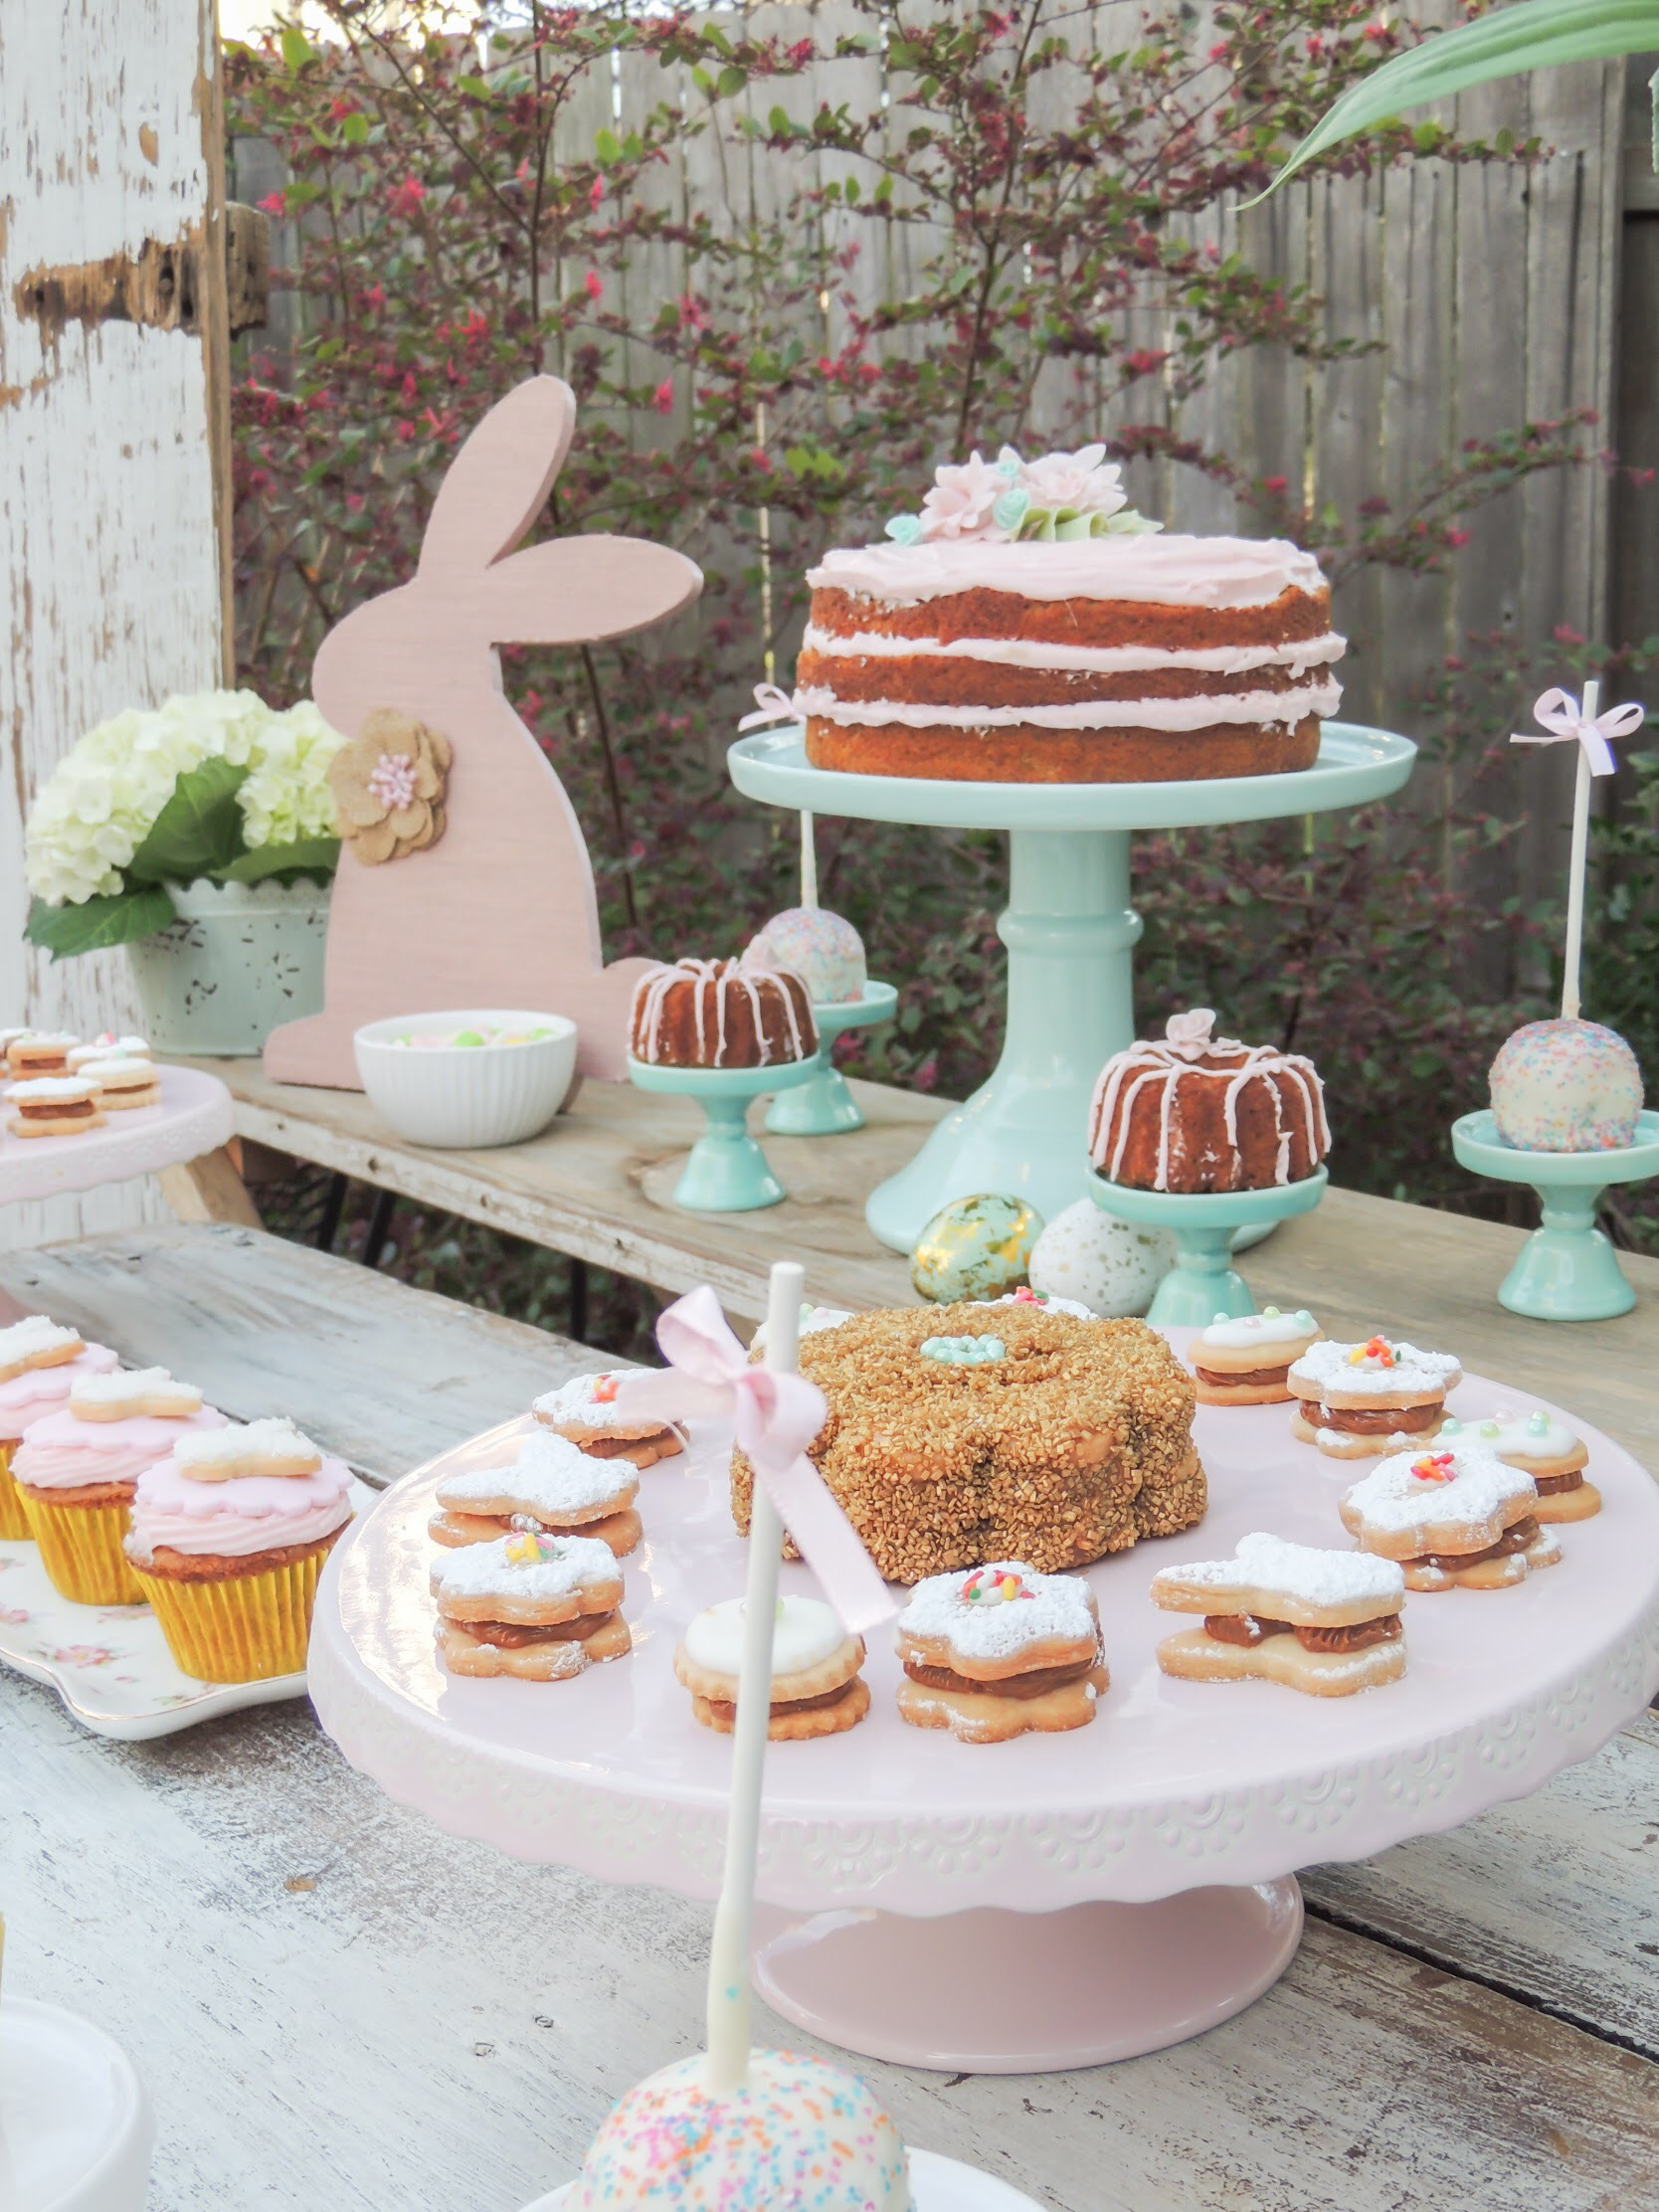 Pretty pink cake and desserts at this sweet Easter party. As seen on Mint Event Design www.minteventdesign.com #eastertable #easterdecor #easterparty #partyideas #easterideas